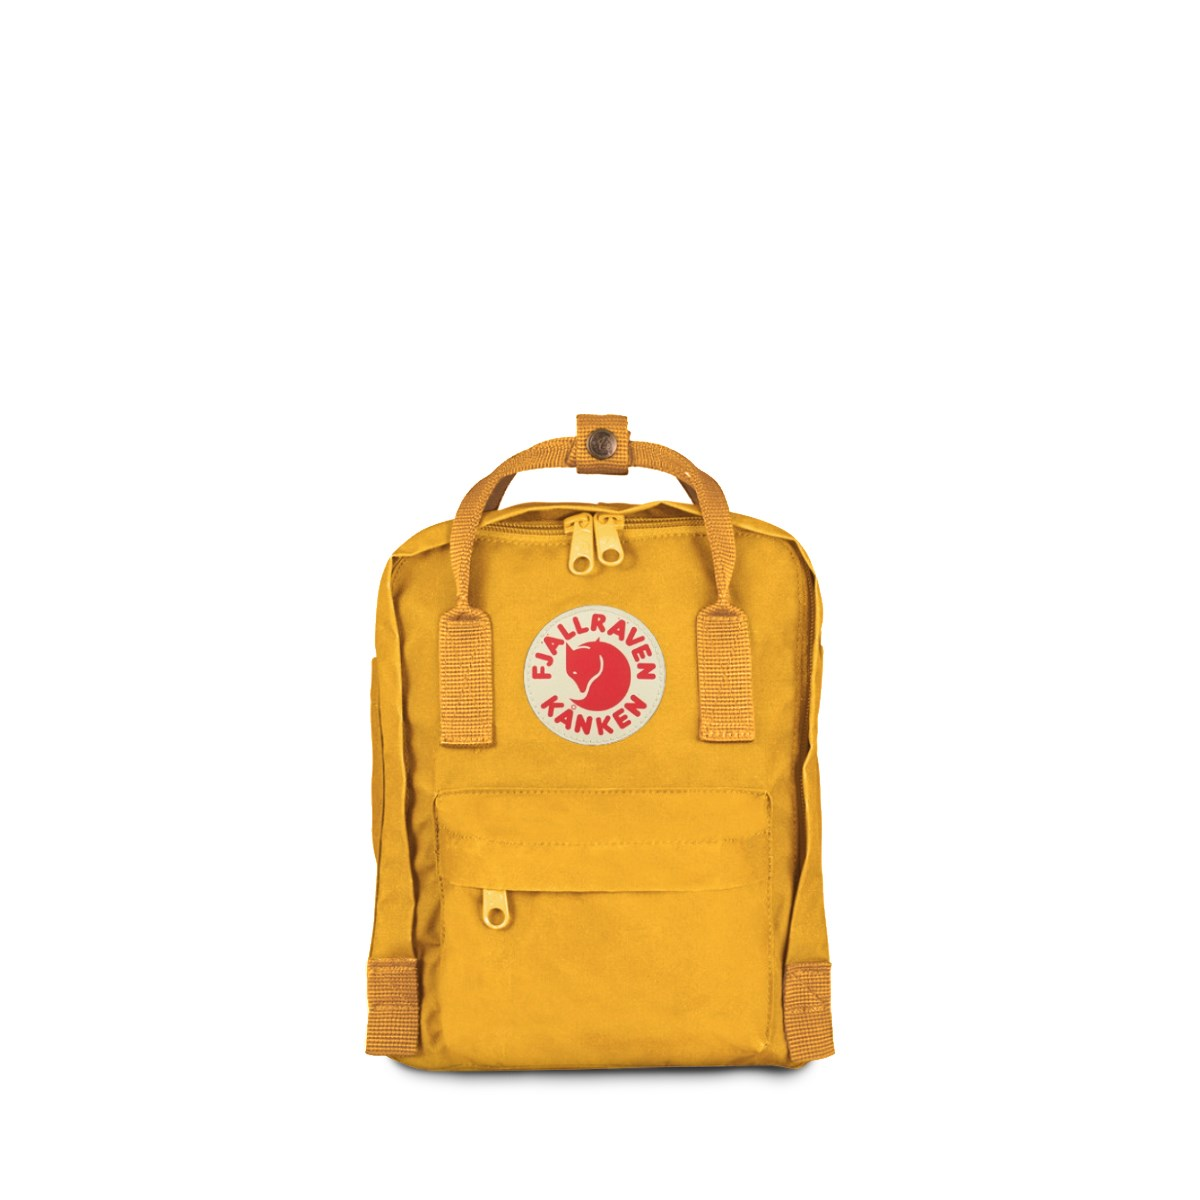 Kanken Mini Ochre Backpack